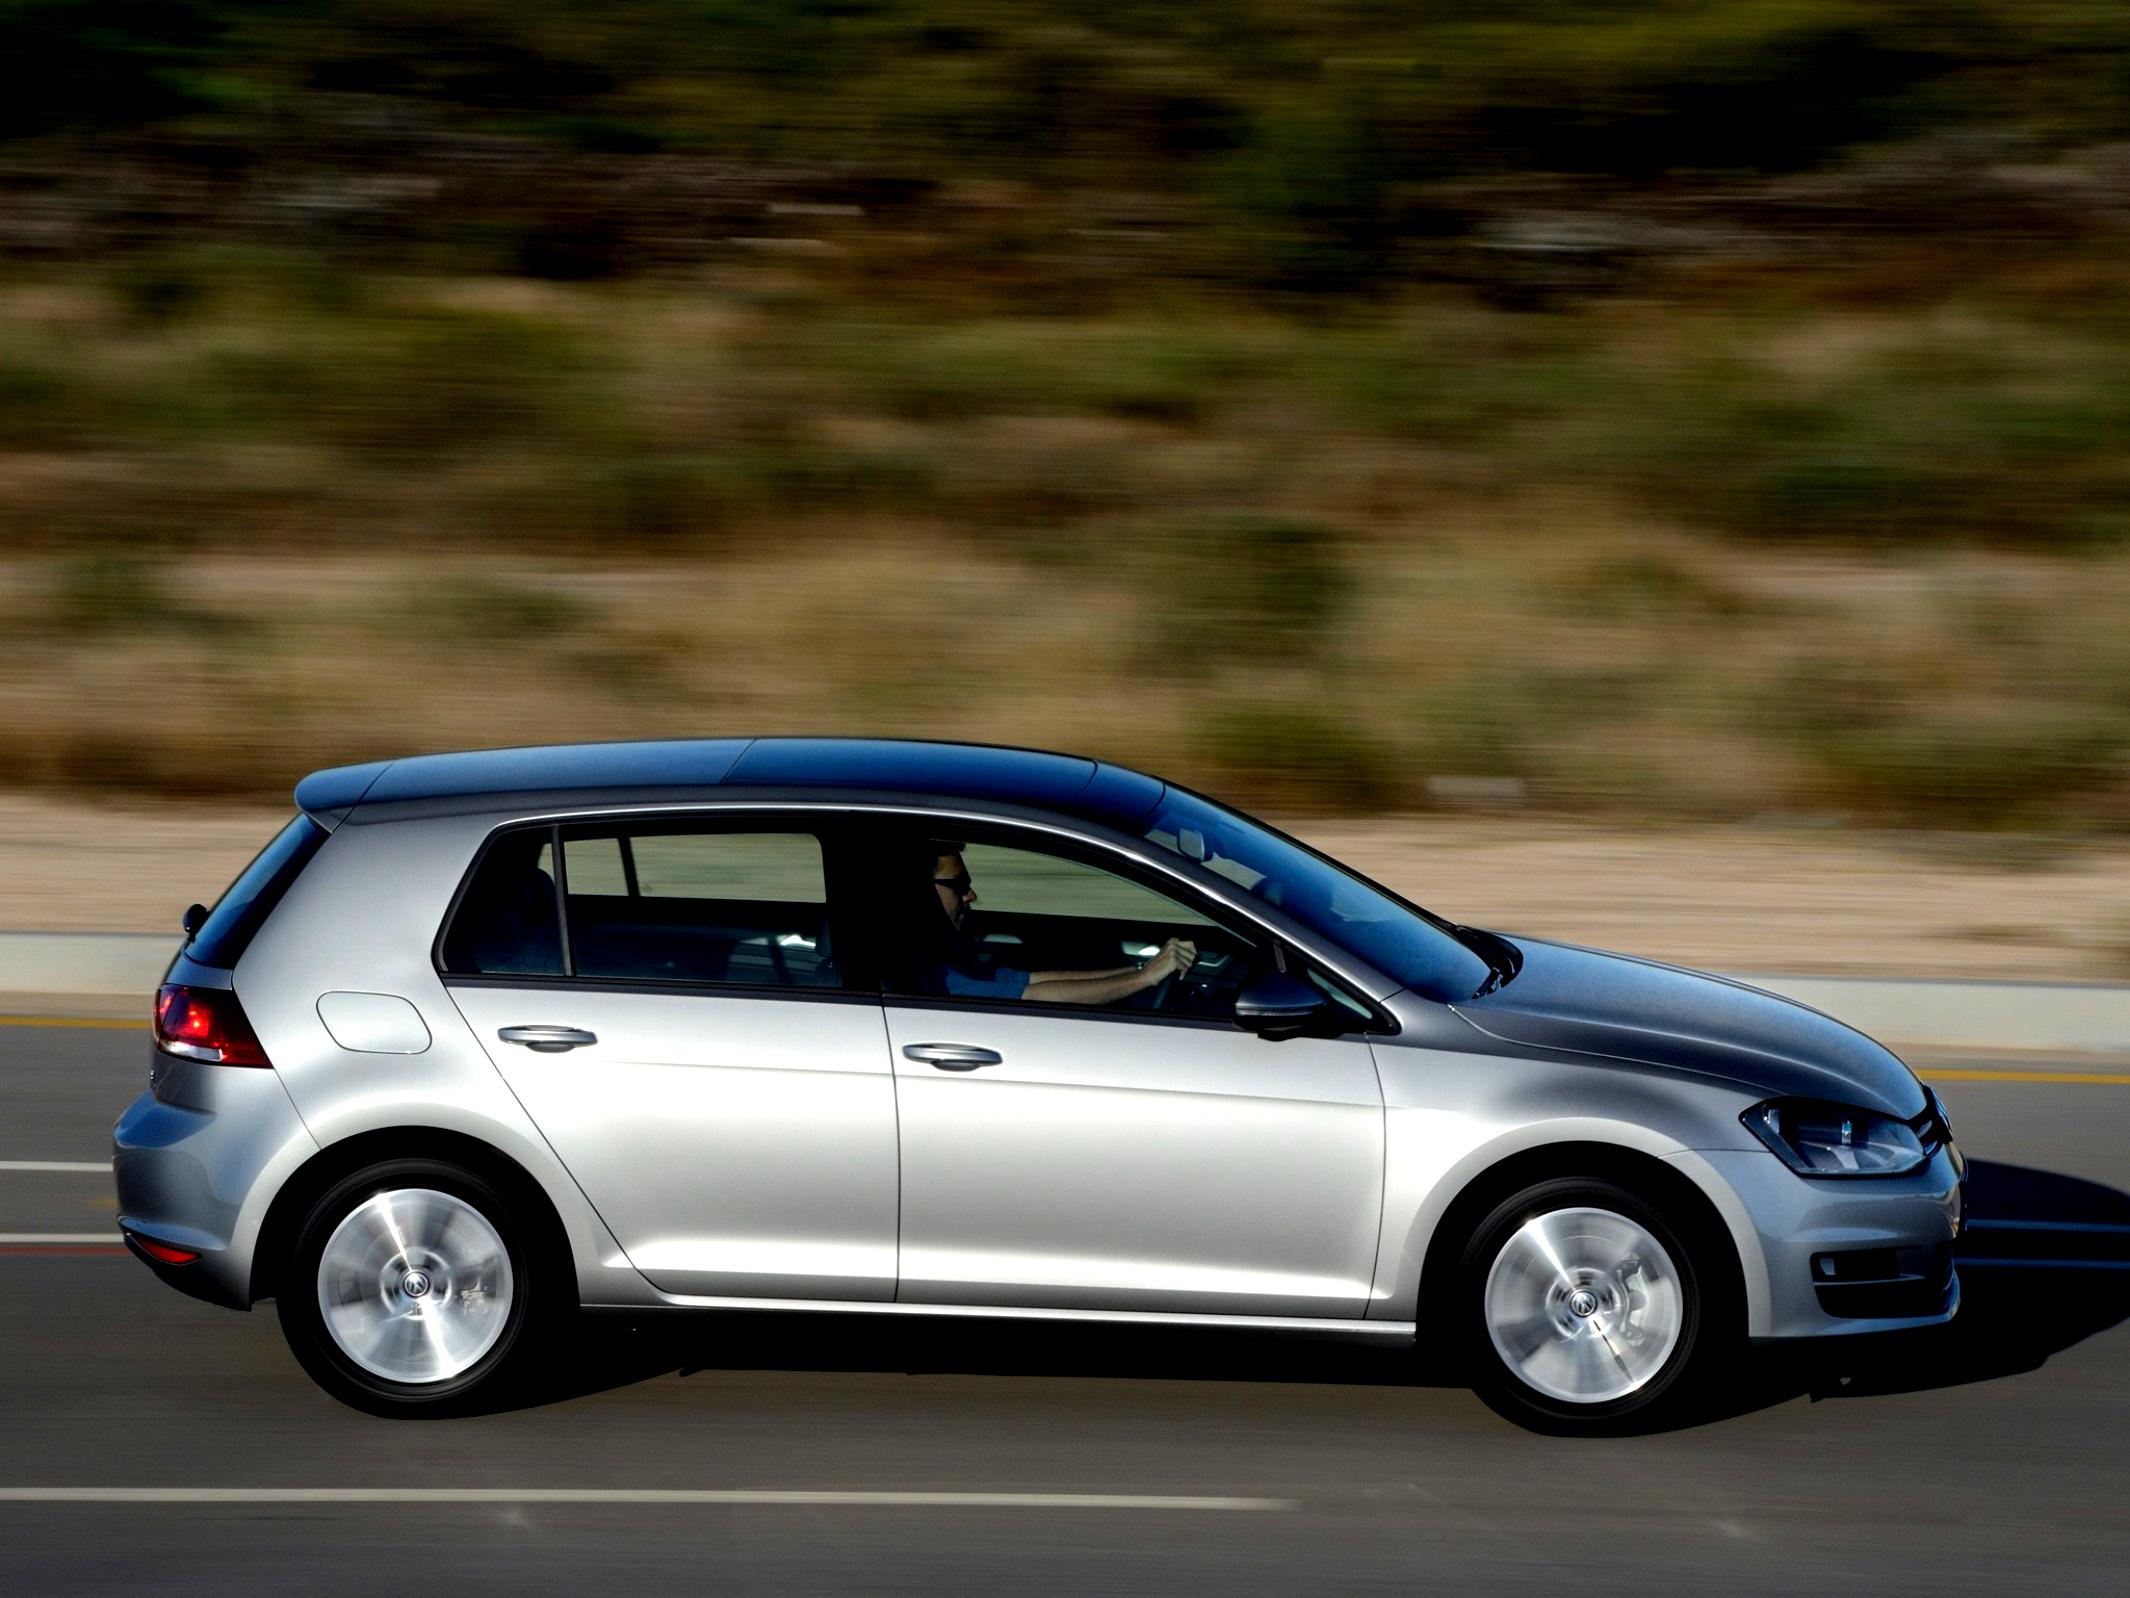 Volkswagen Golf VII 5 Doors 2012 #81